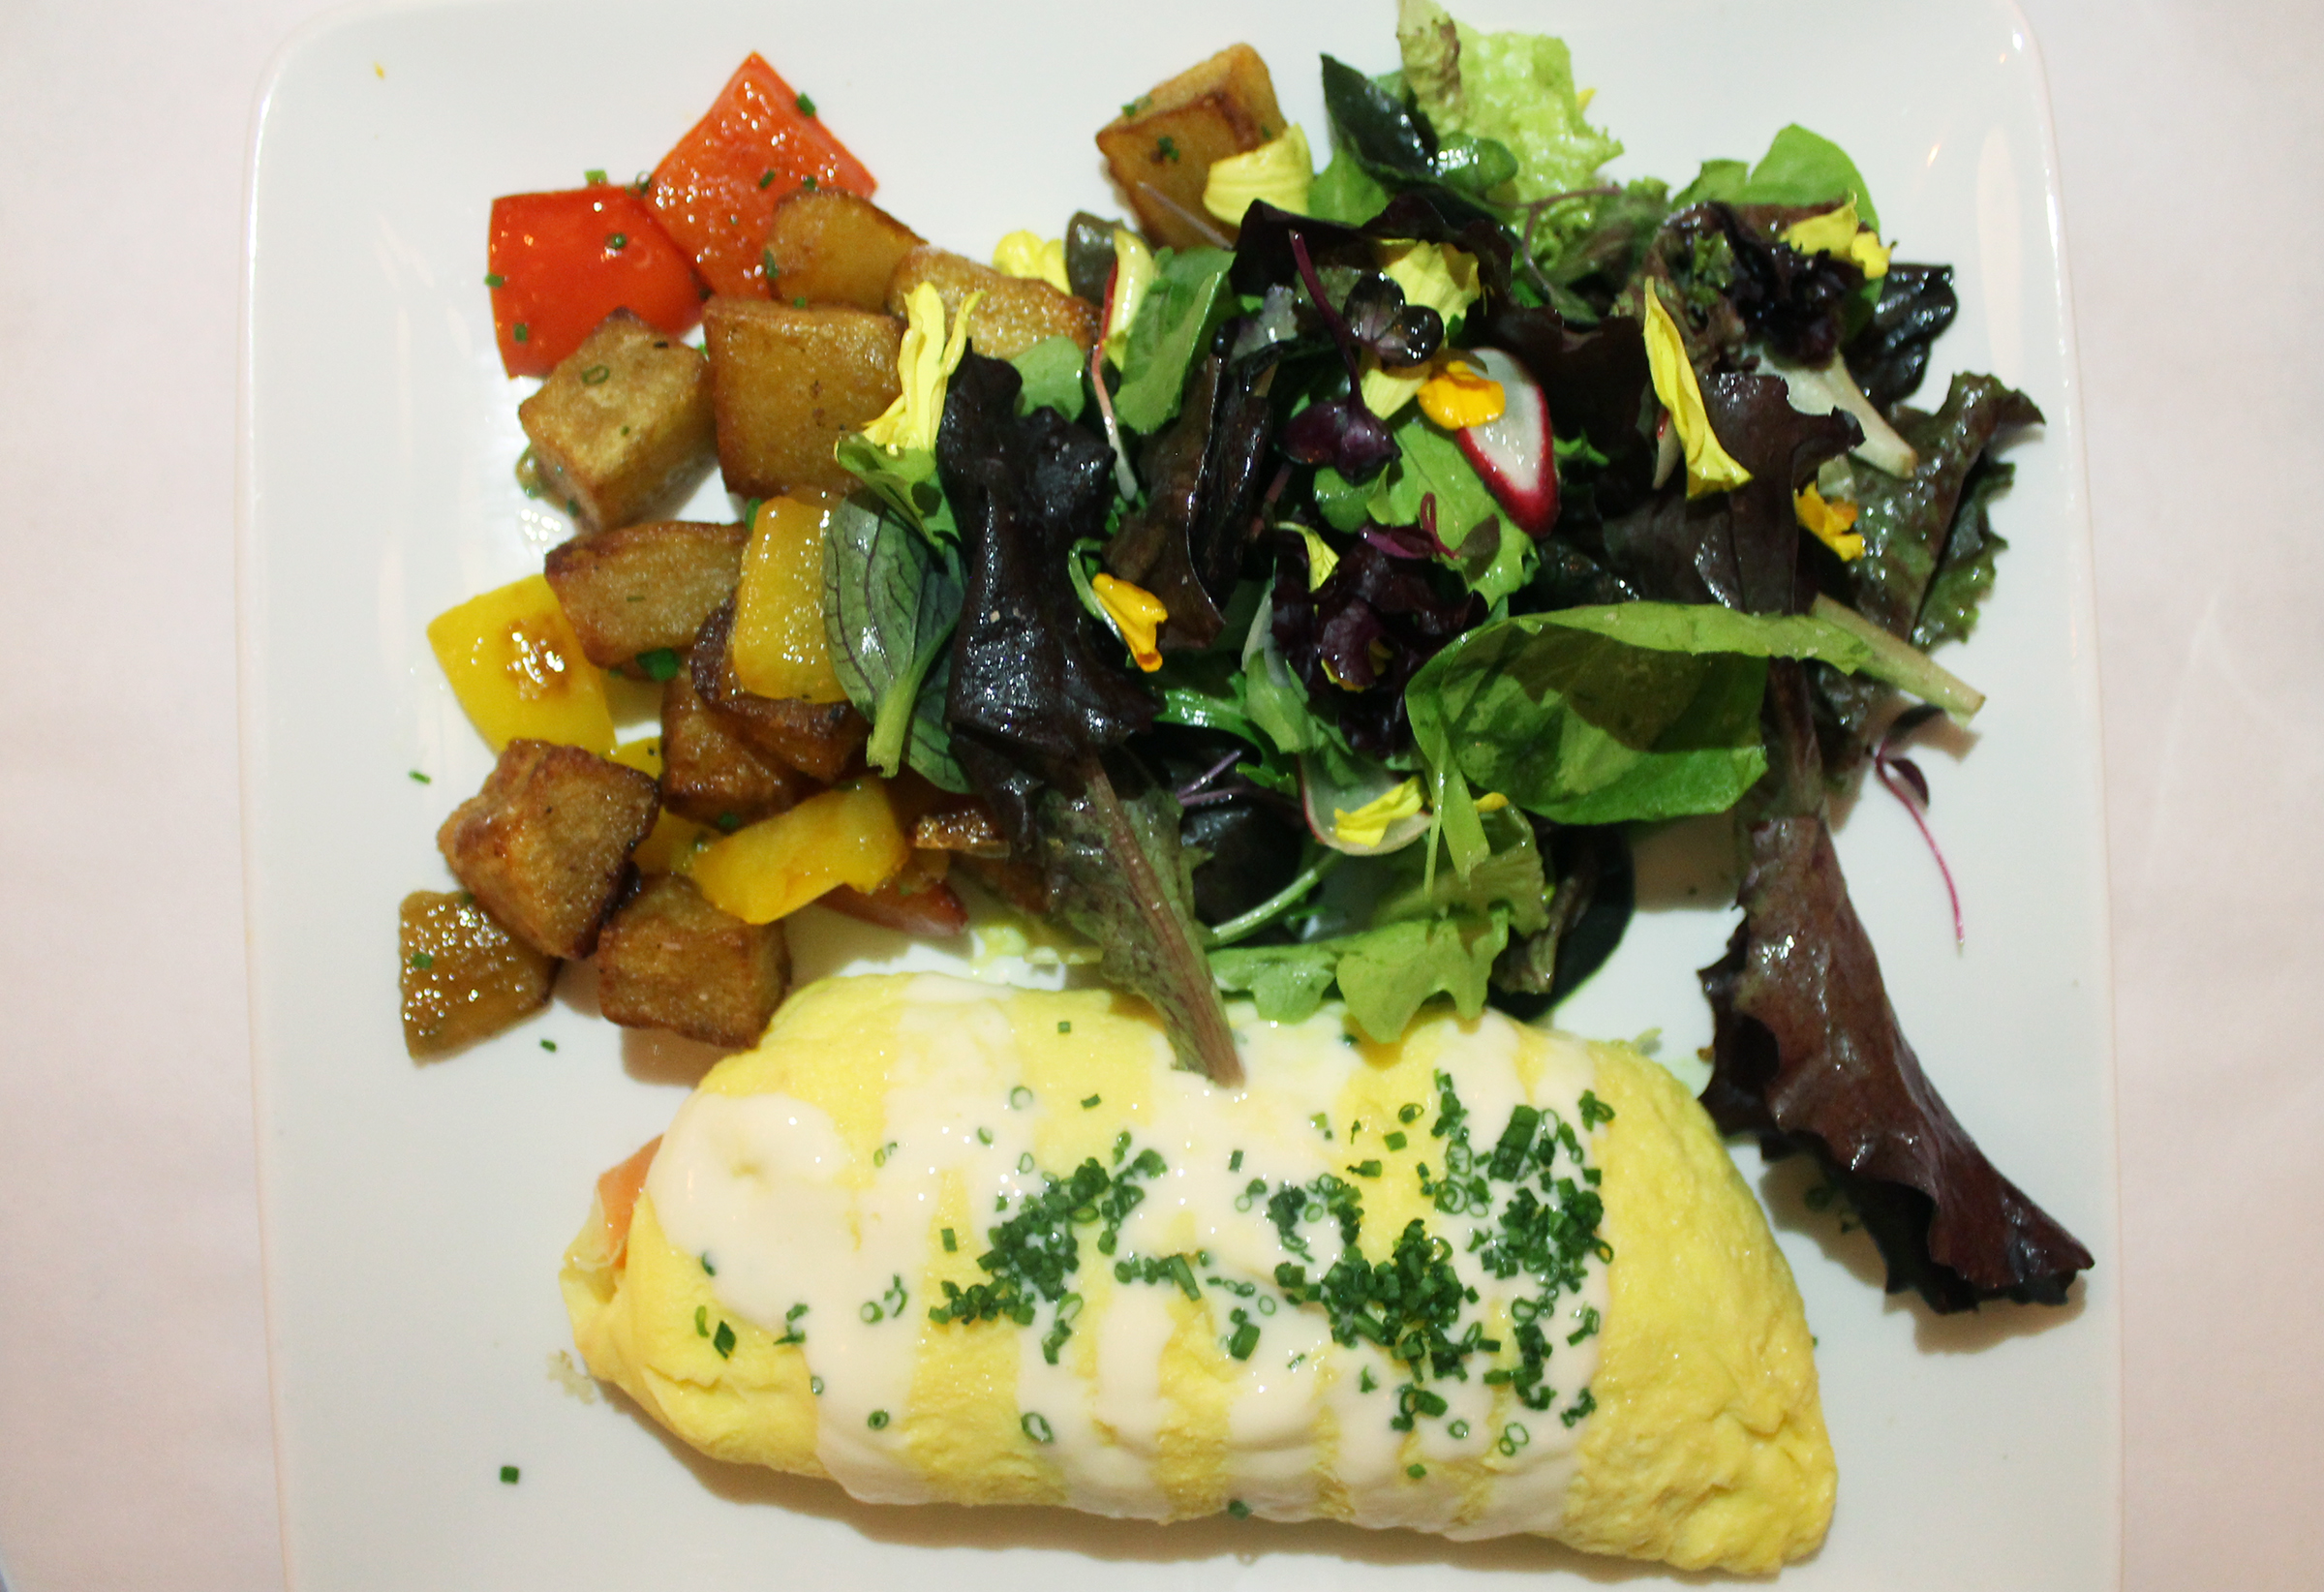 OMELETTE FLORENTINE: Smoked Salmon, Parmesan and Spinach Omelette,Crispy Potatoes, Mesclun Salad